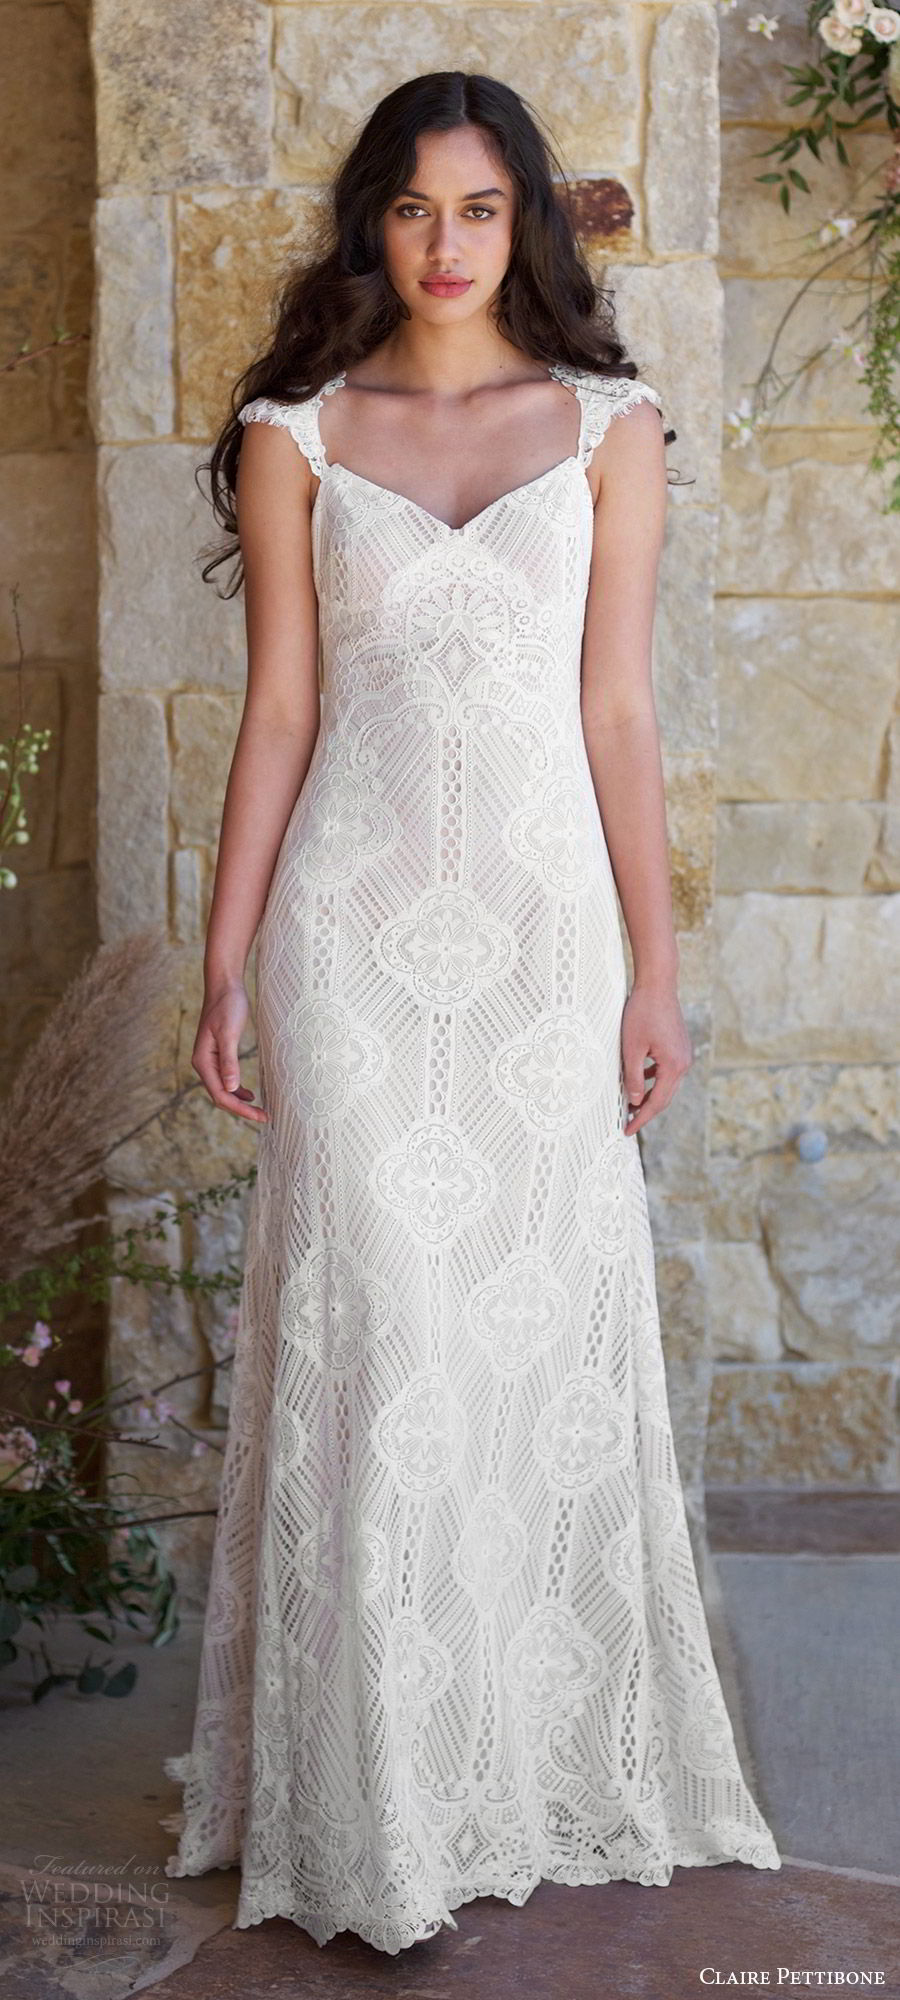 claire pettibone spring 2018 bridal cap sleeve sweetheart lace trumpet wedding dress (calistoga) mv illusion back train boho romantic